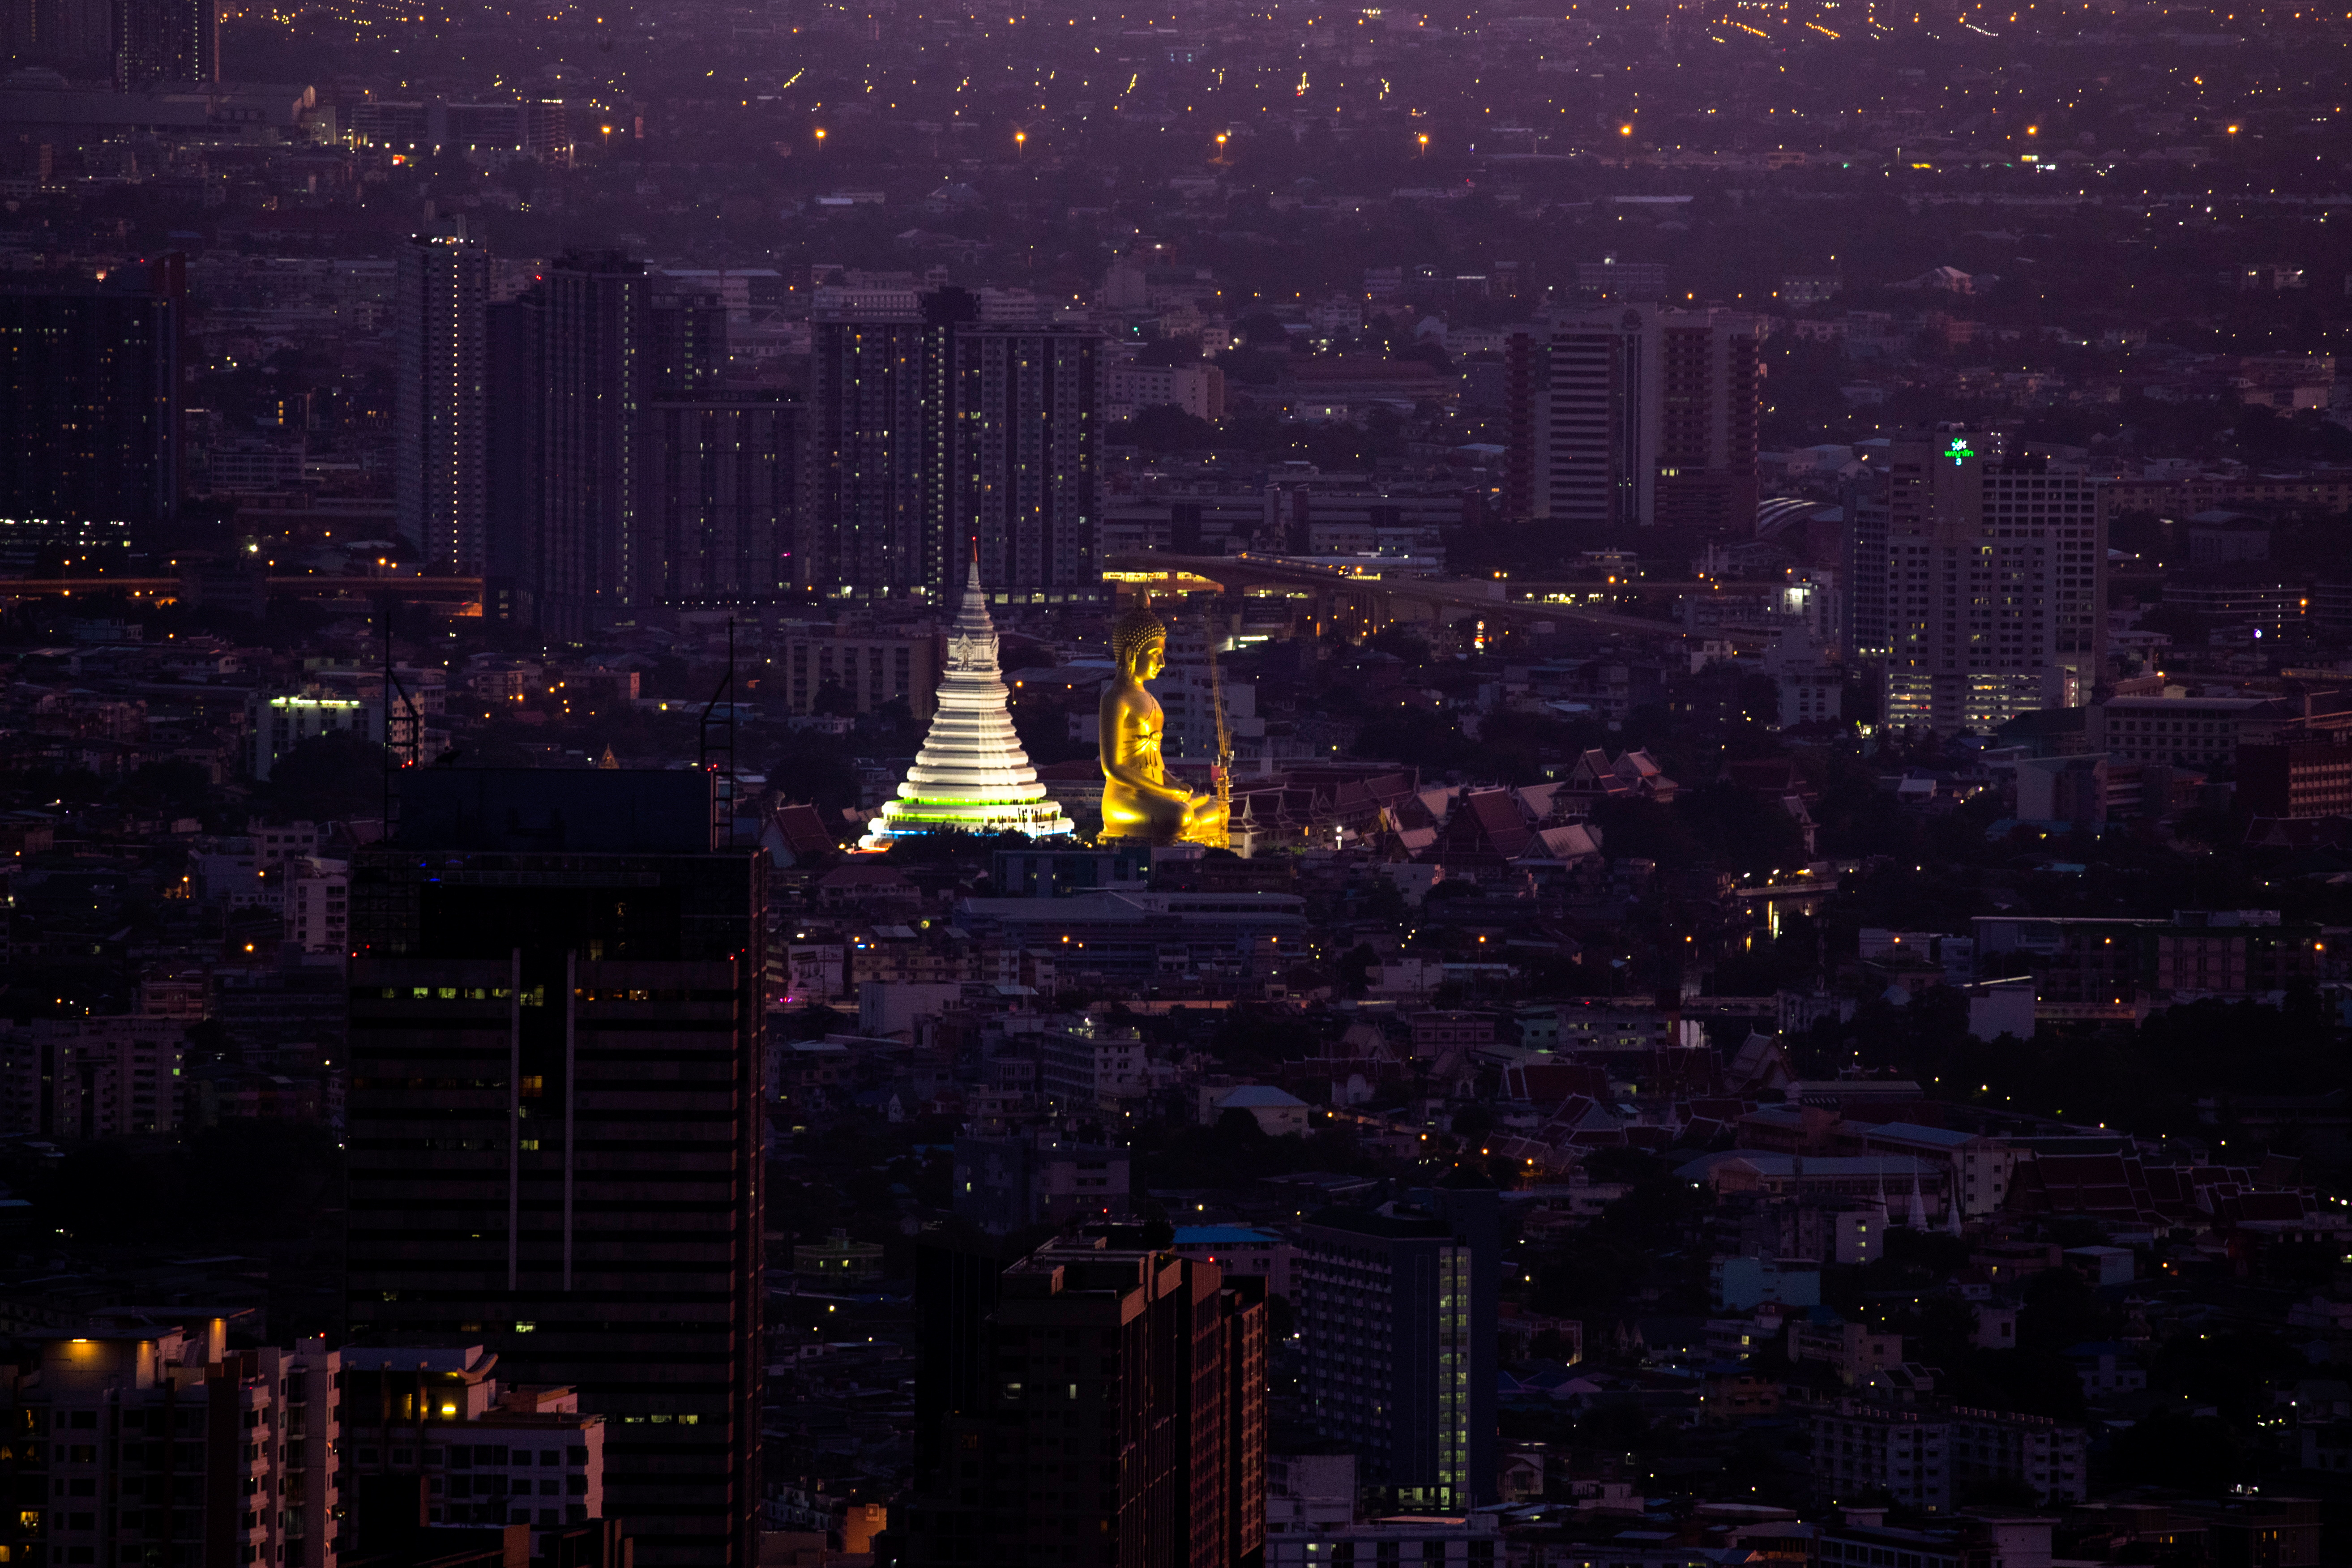 The giant Buddha statue of Wat Paknam Phasi Charoen temple is seen during sunset in Bangkok, Thailand, June 2, 2021. Picture taken June 2, 2021. REUTERS/Athit Perawongmetha